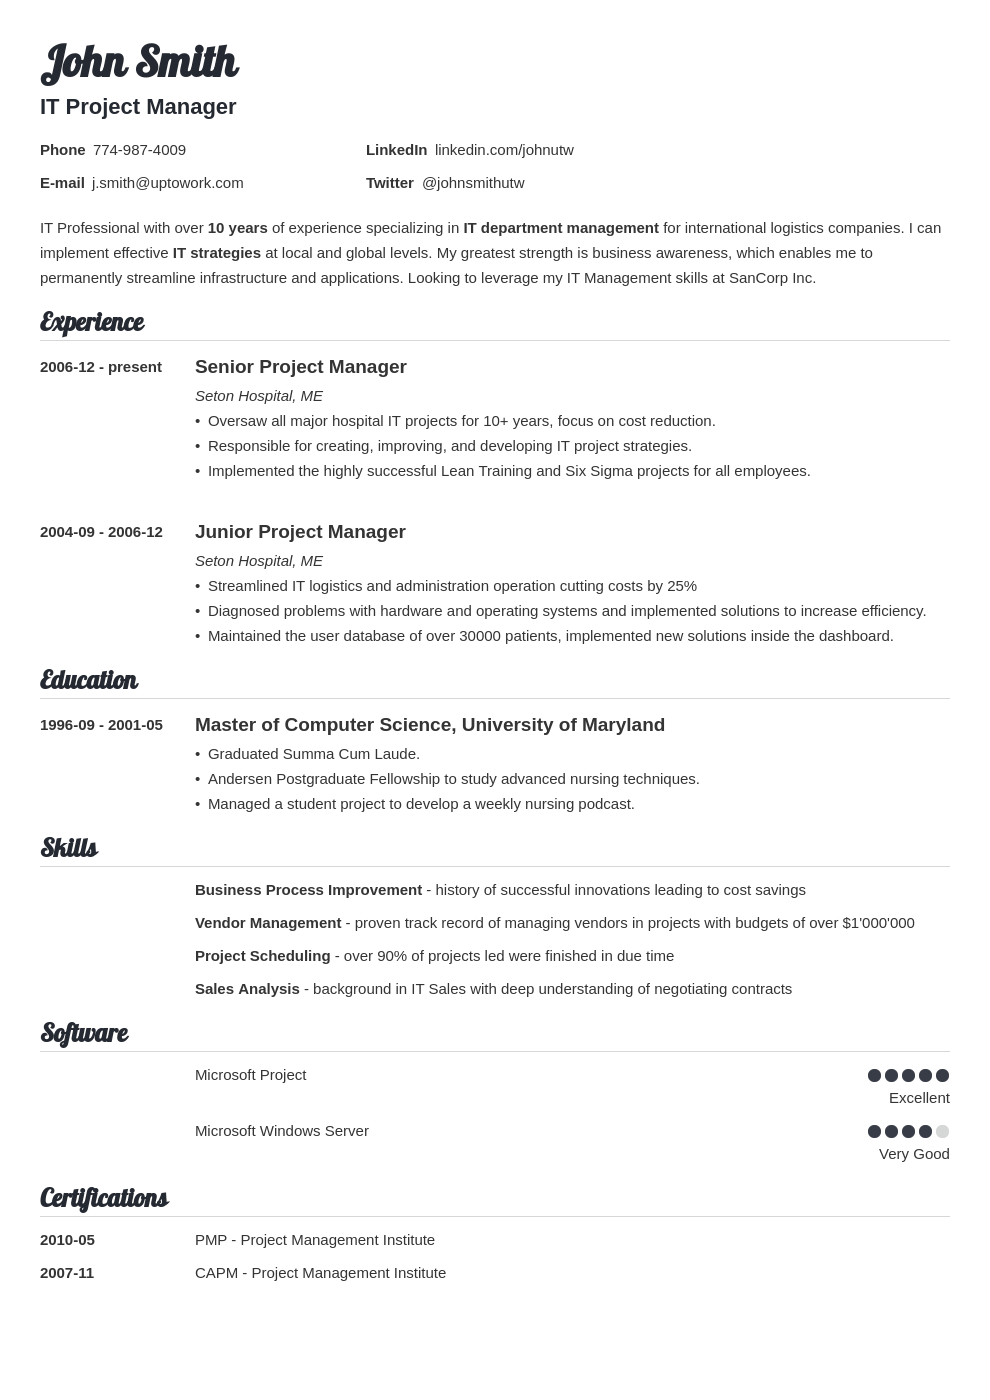 Delightful Professional Resume Template Valera Pertaining To Reume Templates